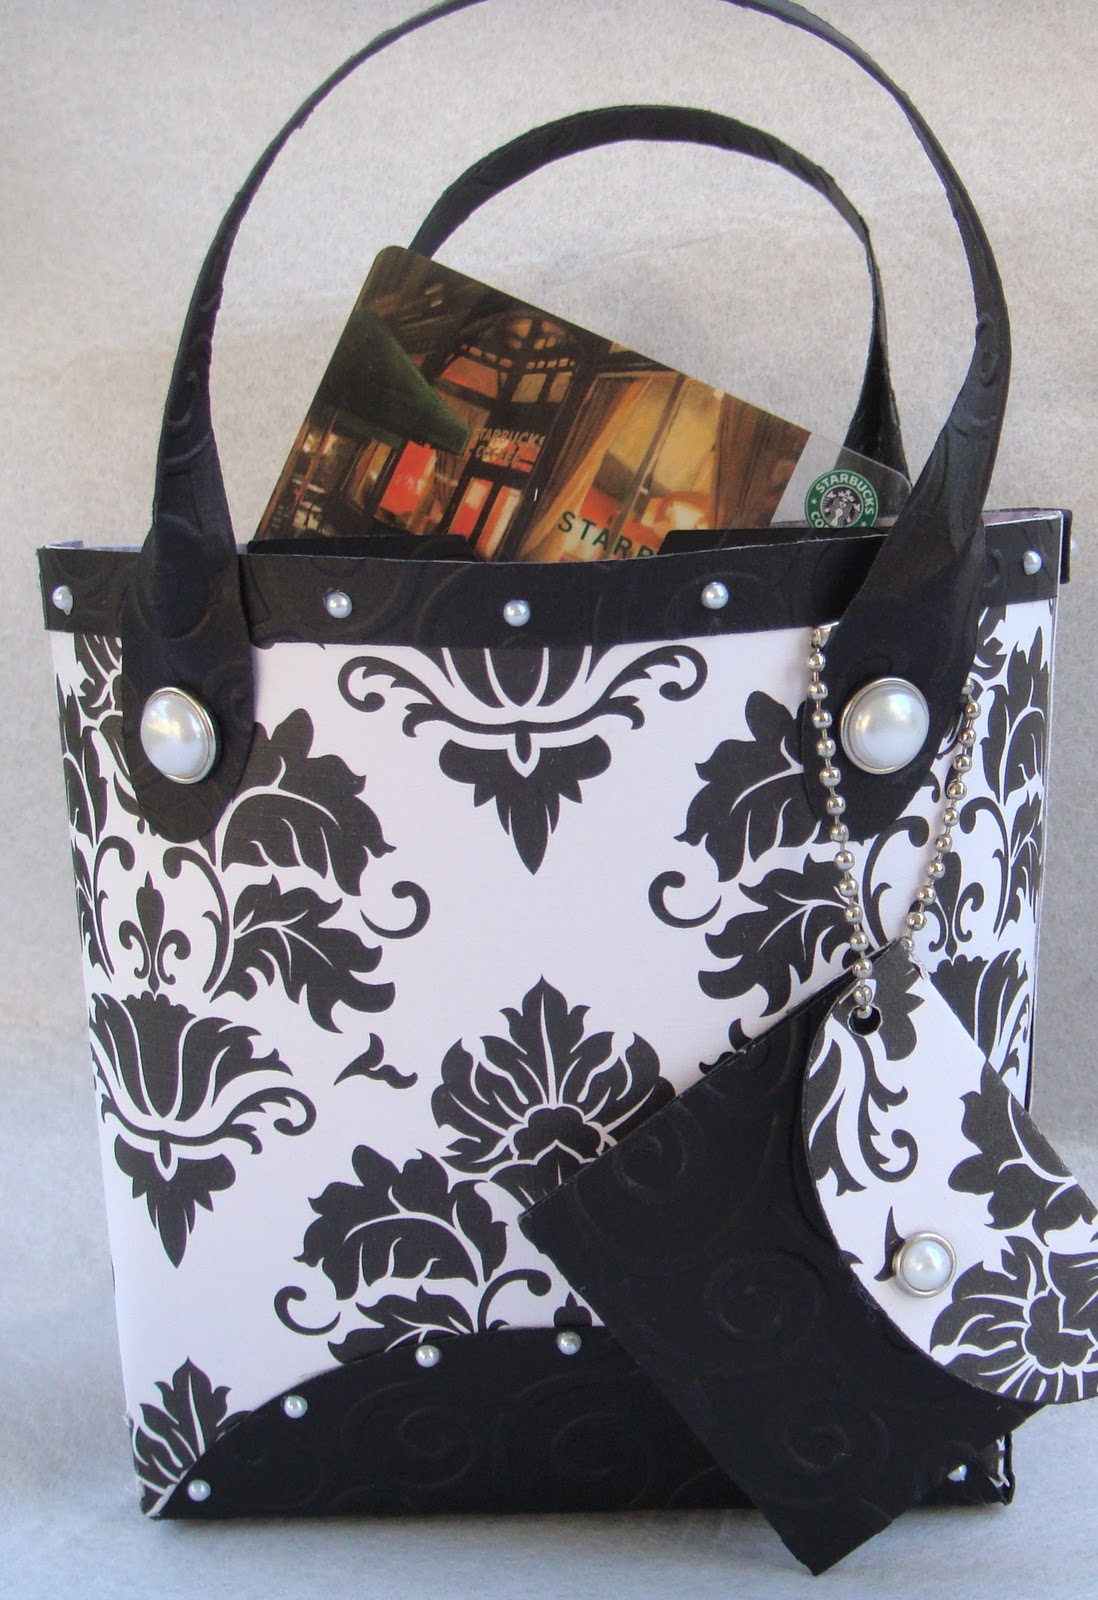 Cards & Crafts & More, Oh My!: New Card and Mini Purse for my ...